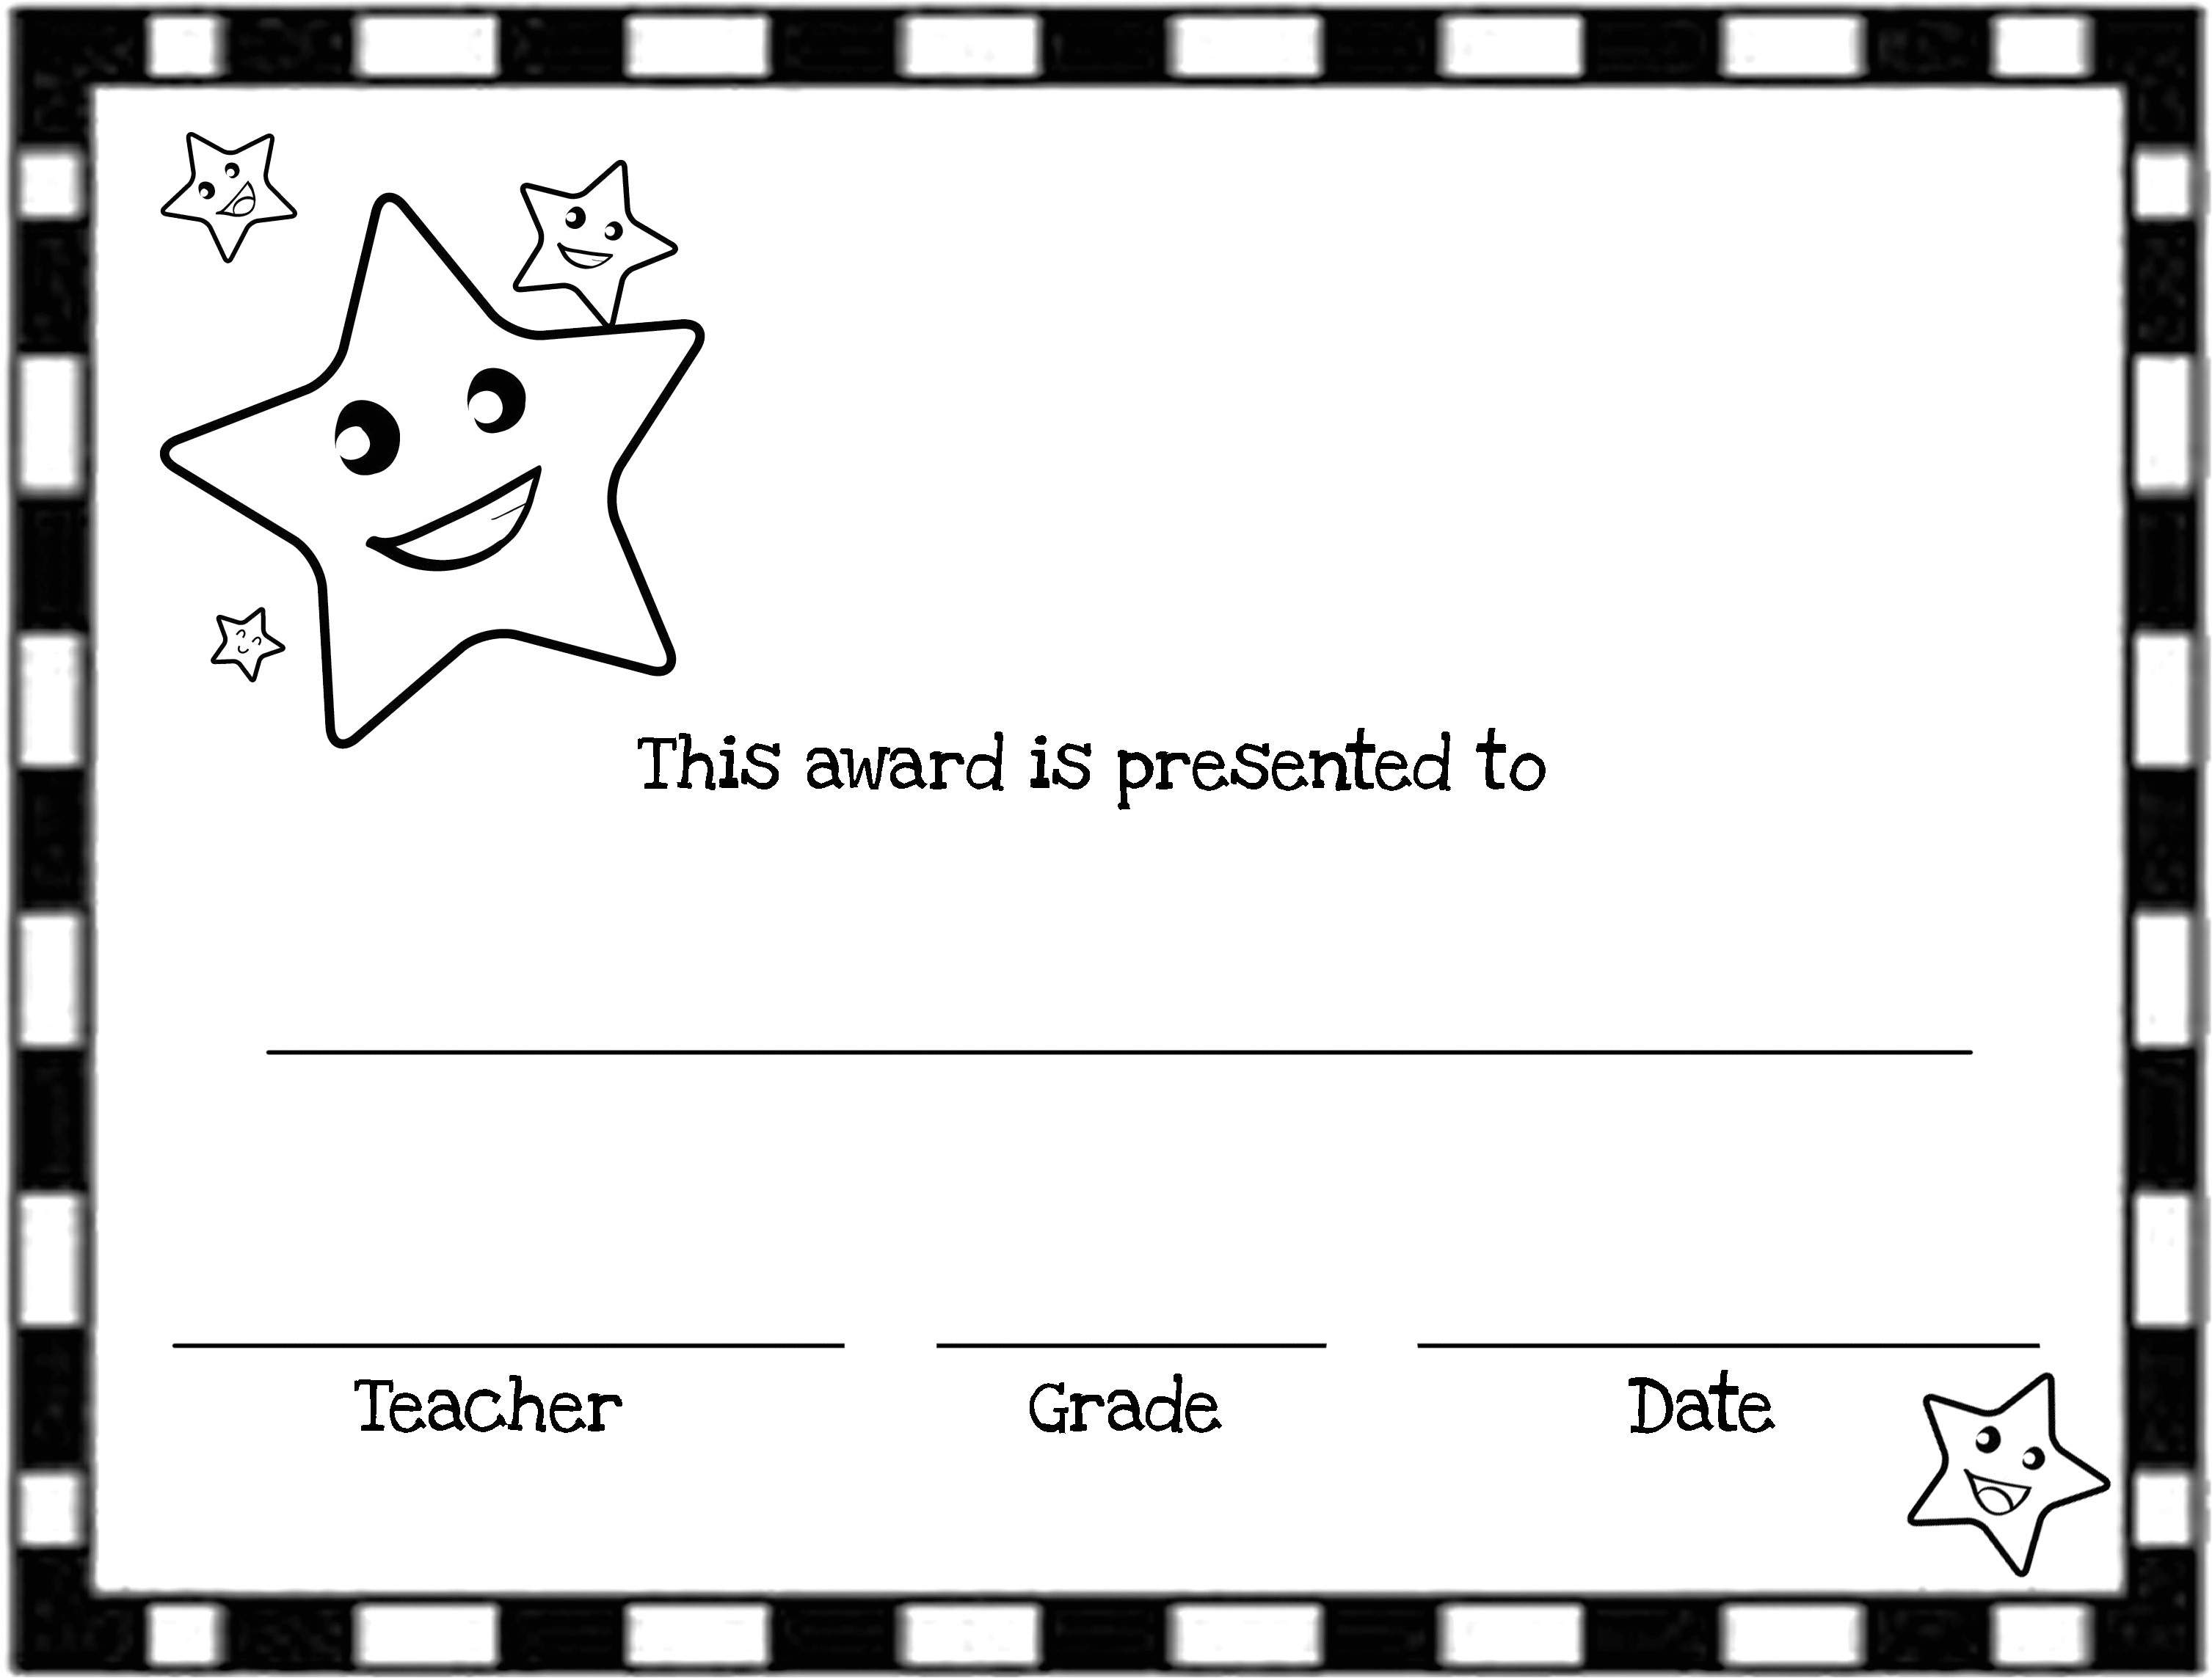 Free Award Certificate Templates for Students Free Printable Award Certificates for Elementary Students